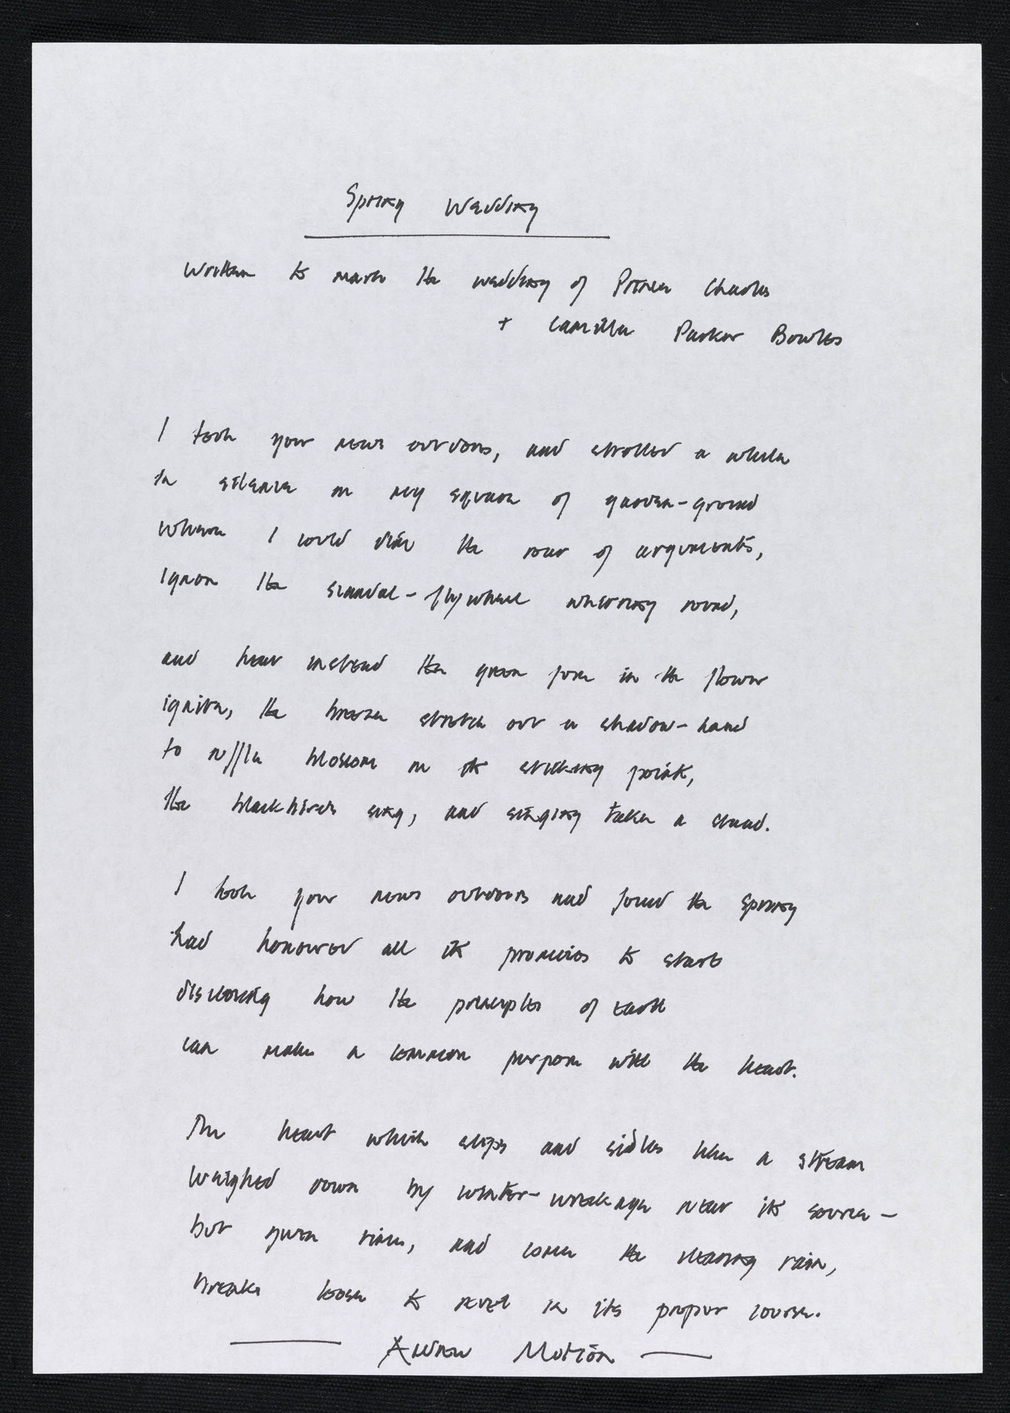 Spring wedding : written to mark the wedding of Prince Charles & Camilla Parker Bowles / Andrew Motion